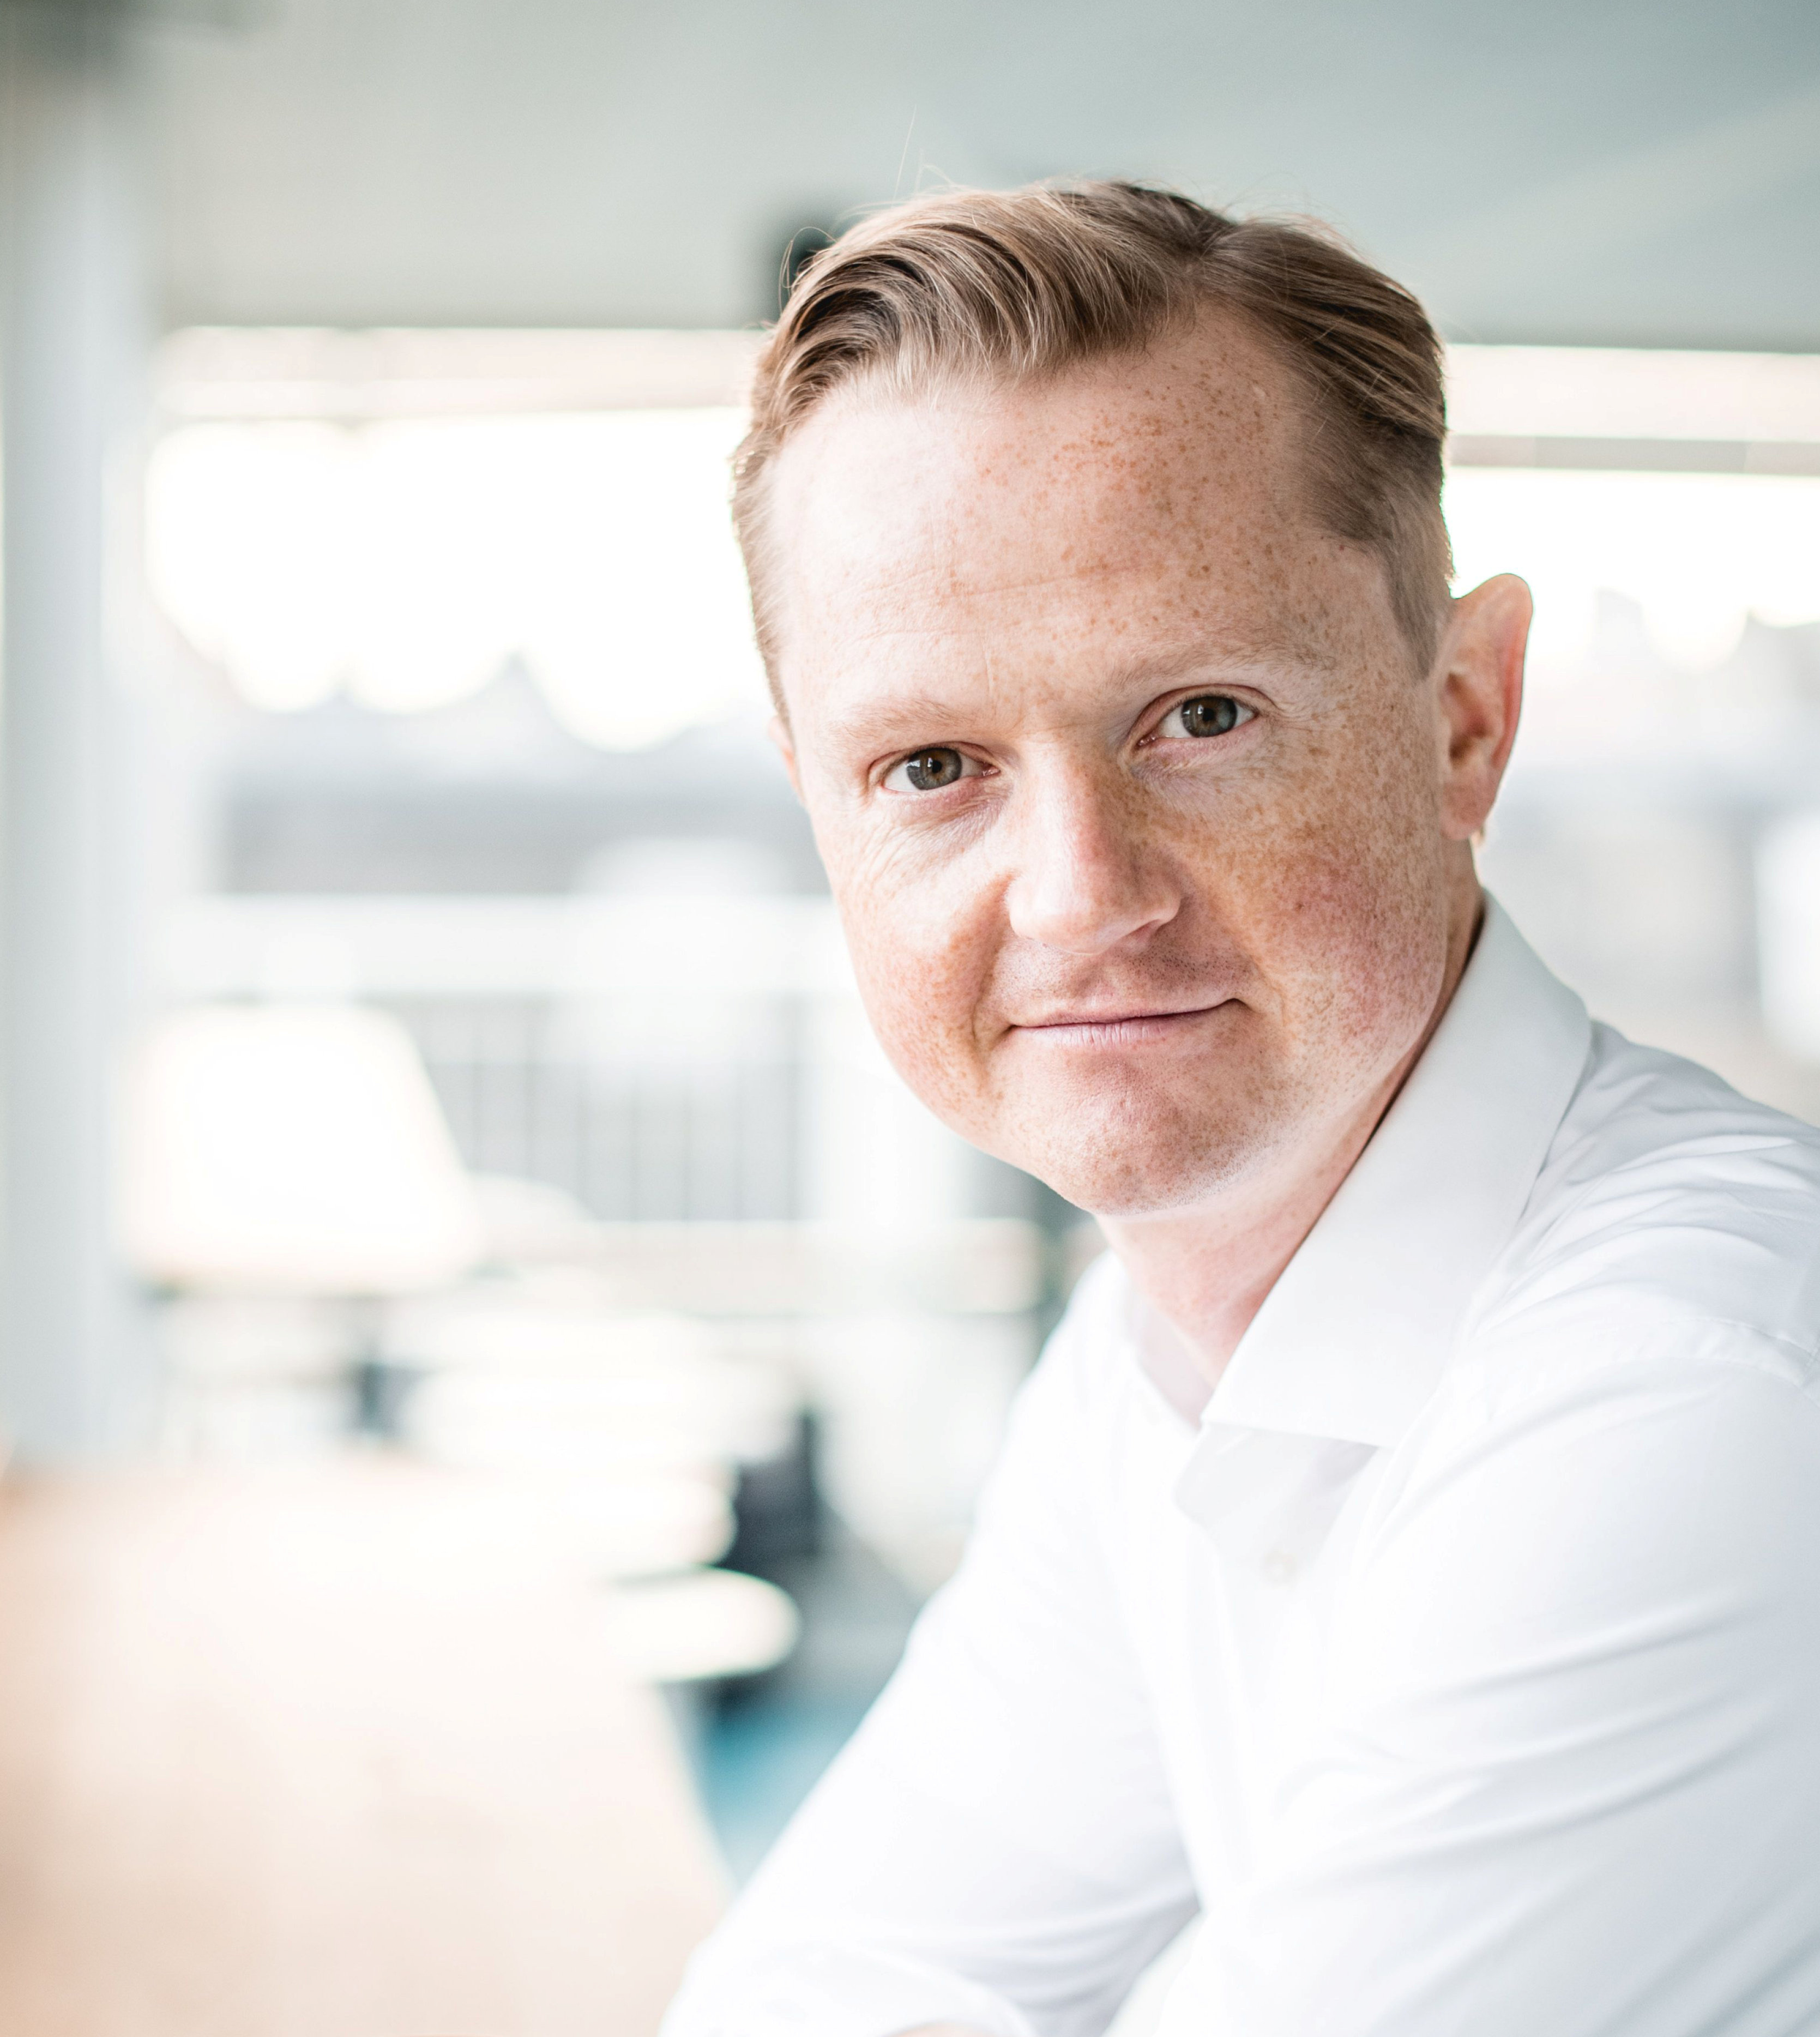 Peter Mühlmann, founder and CEO of Trustpilot